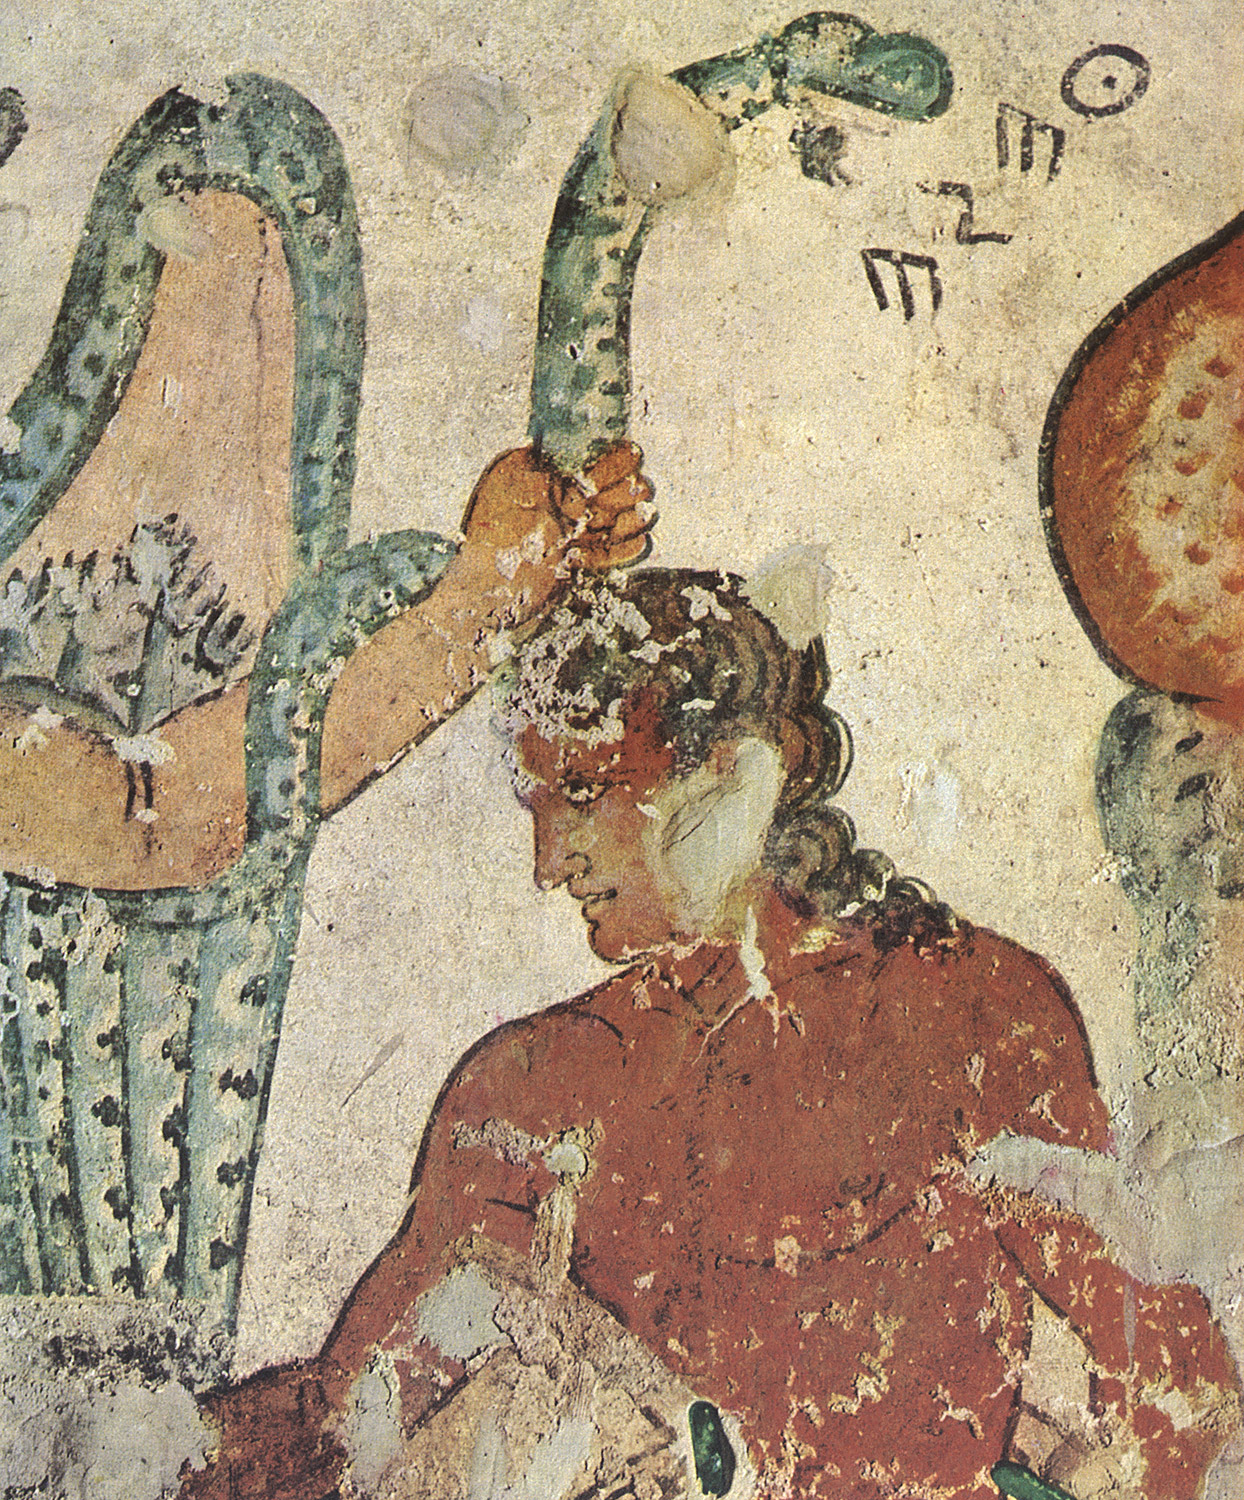 Demon threatening Theseus. Detail. 3rd—2nd centuries BCE. Tarquinia, Tomb of the Orcus